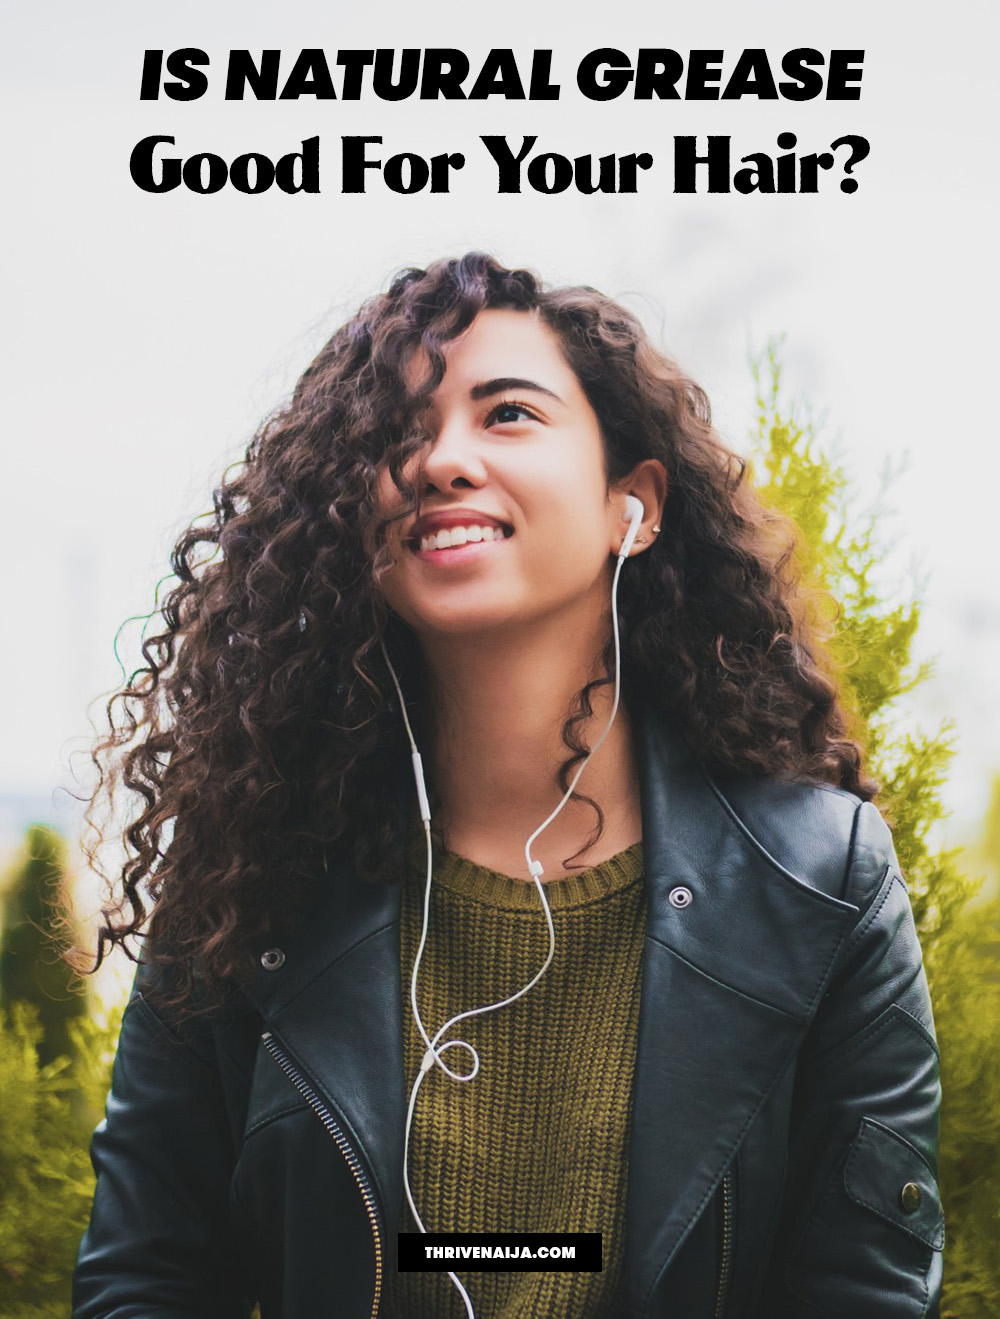 Is Natural Grease Good For Your Hair?